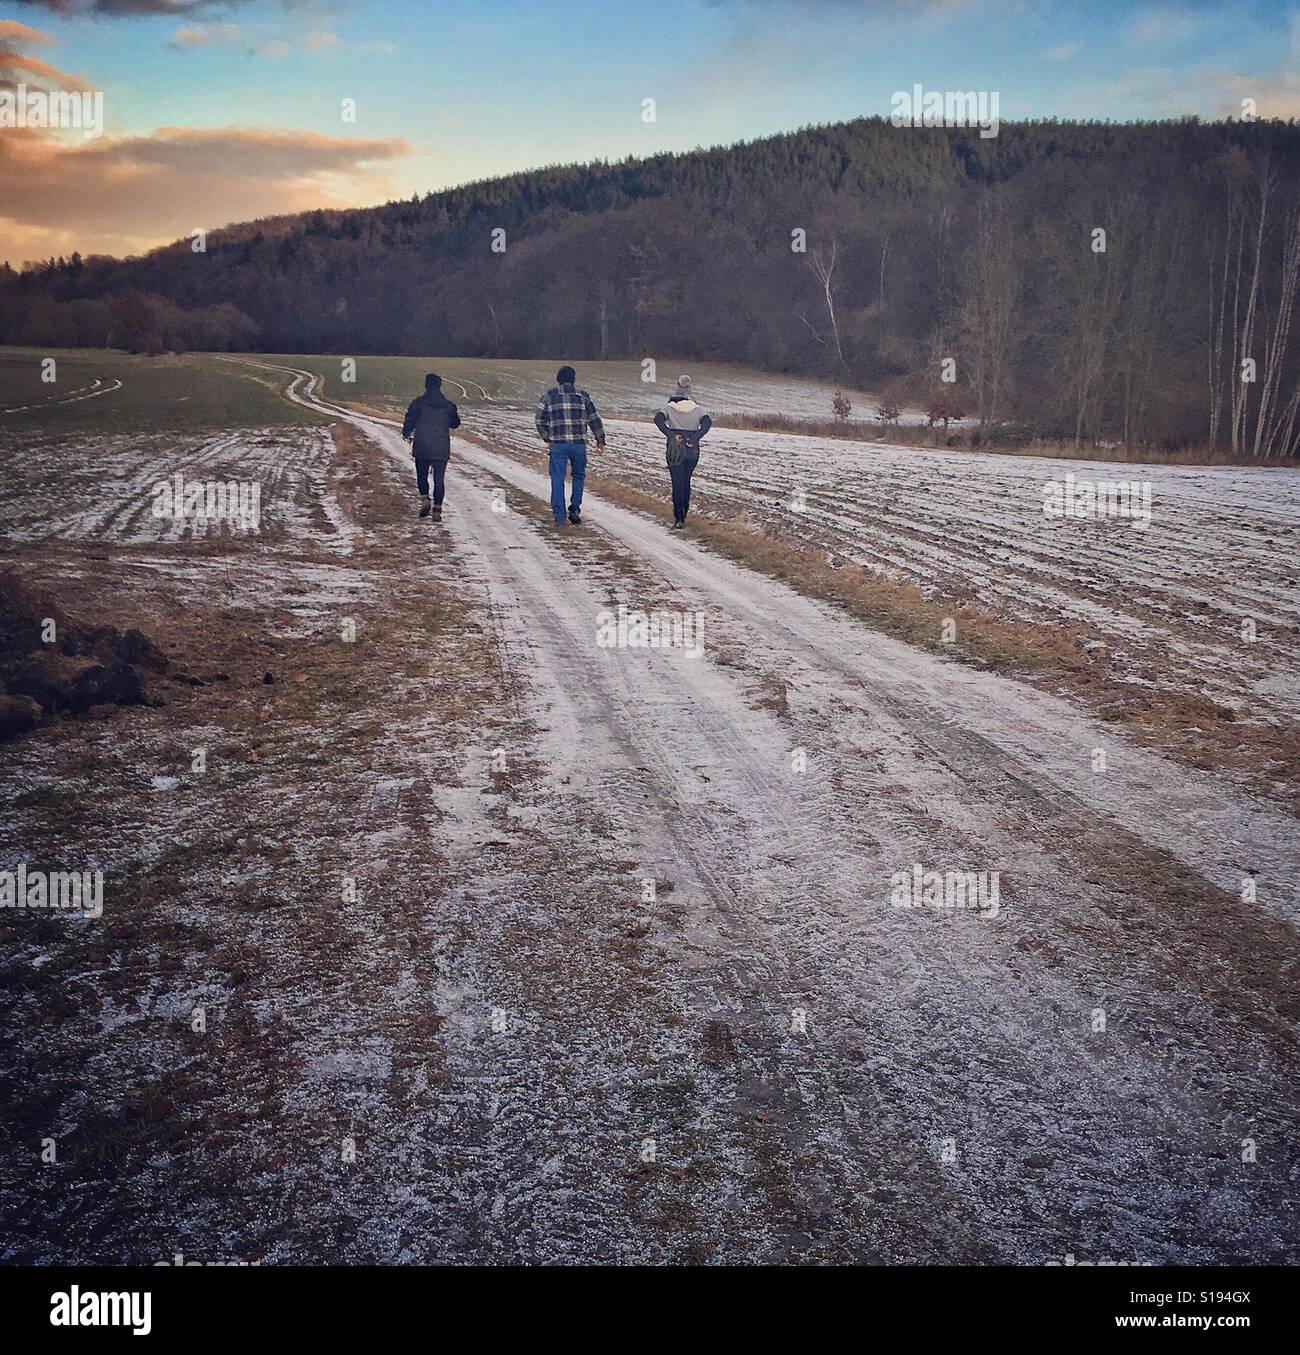 Three persons taking a family walk at winter - Stock Image